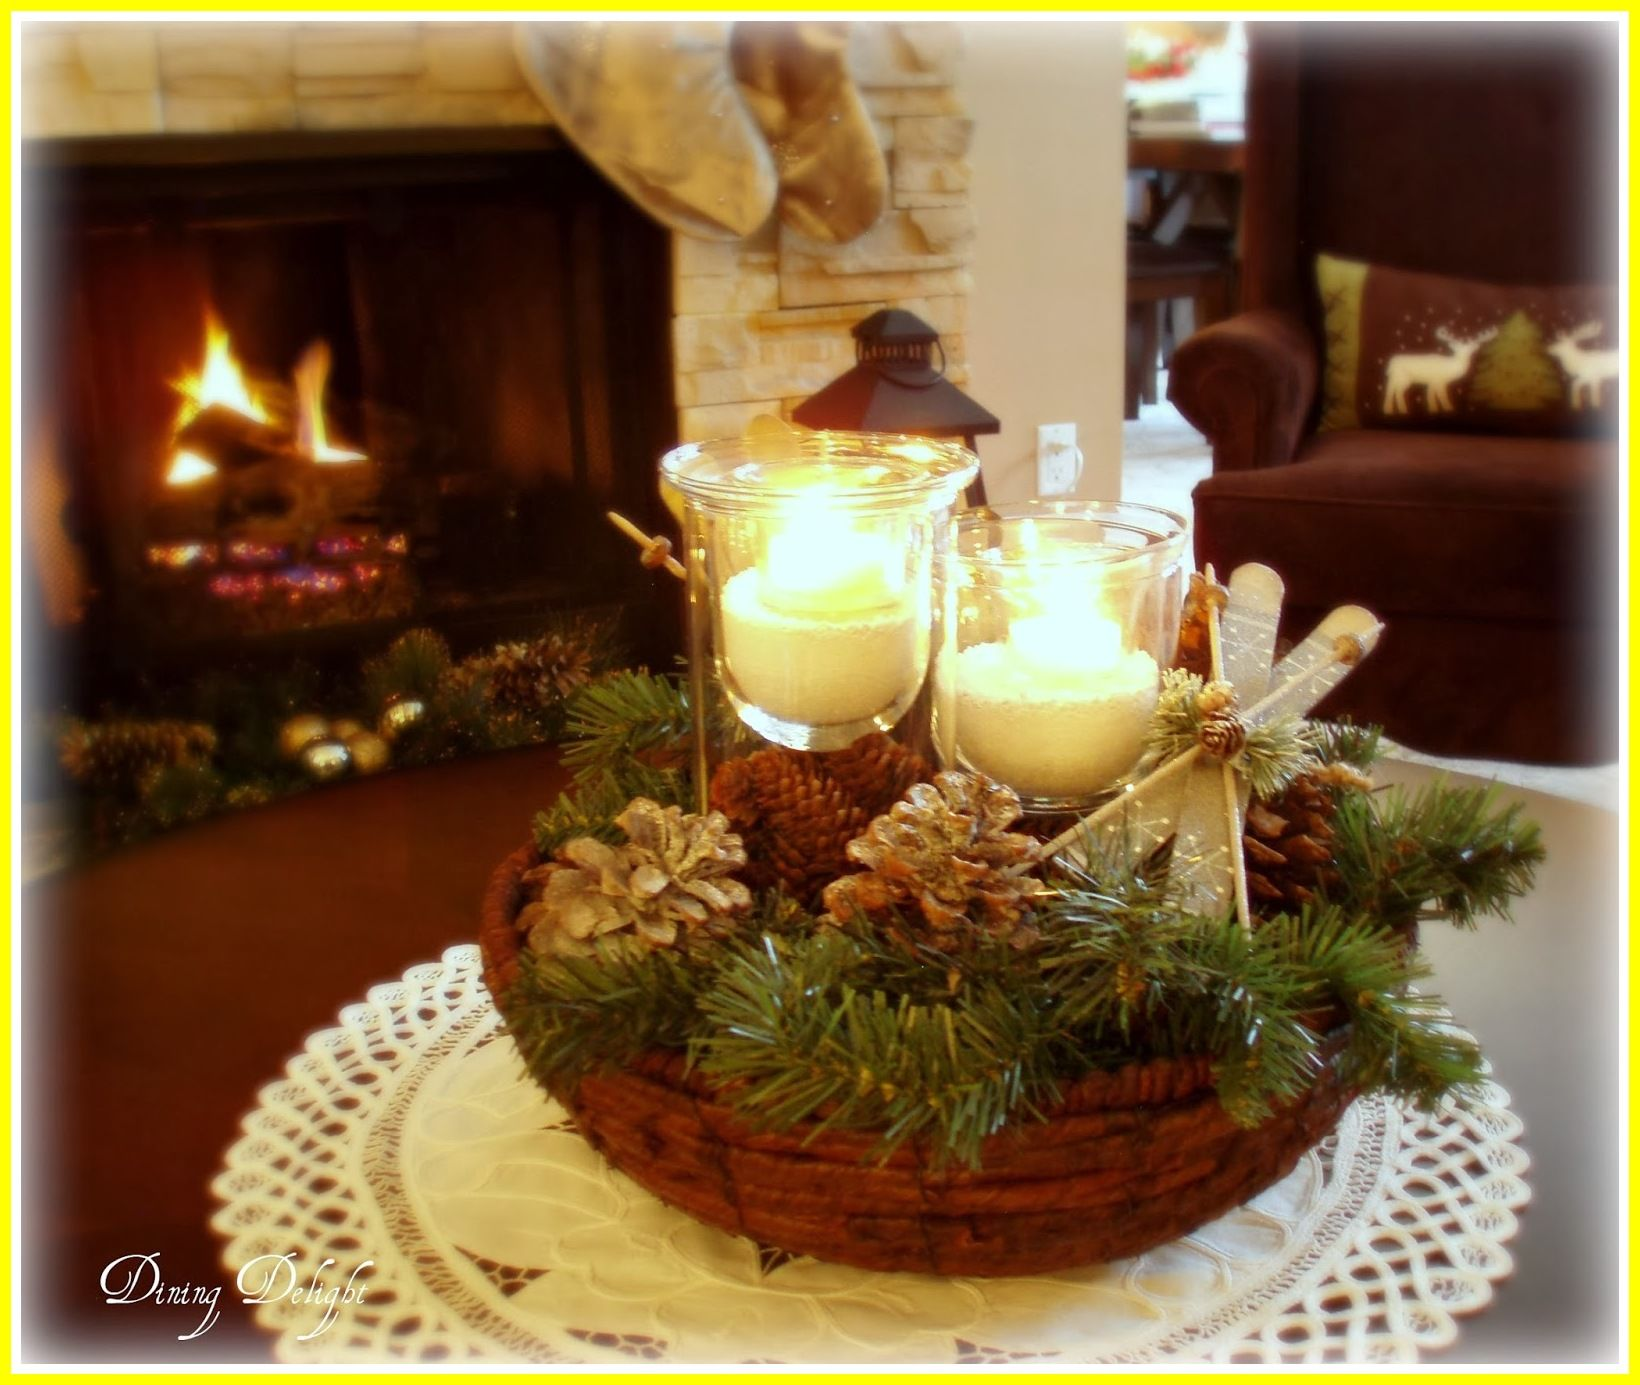 38 Reference Of Coffee Table Holiday Decor Ideas In 2020 Decorating Coffee Tables Coffee Table Centerpieces Table Decorations